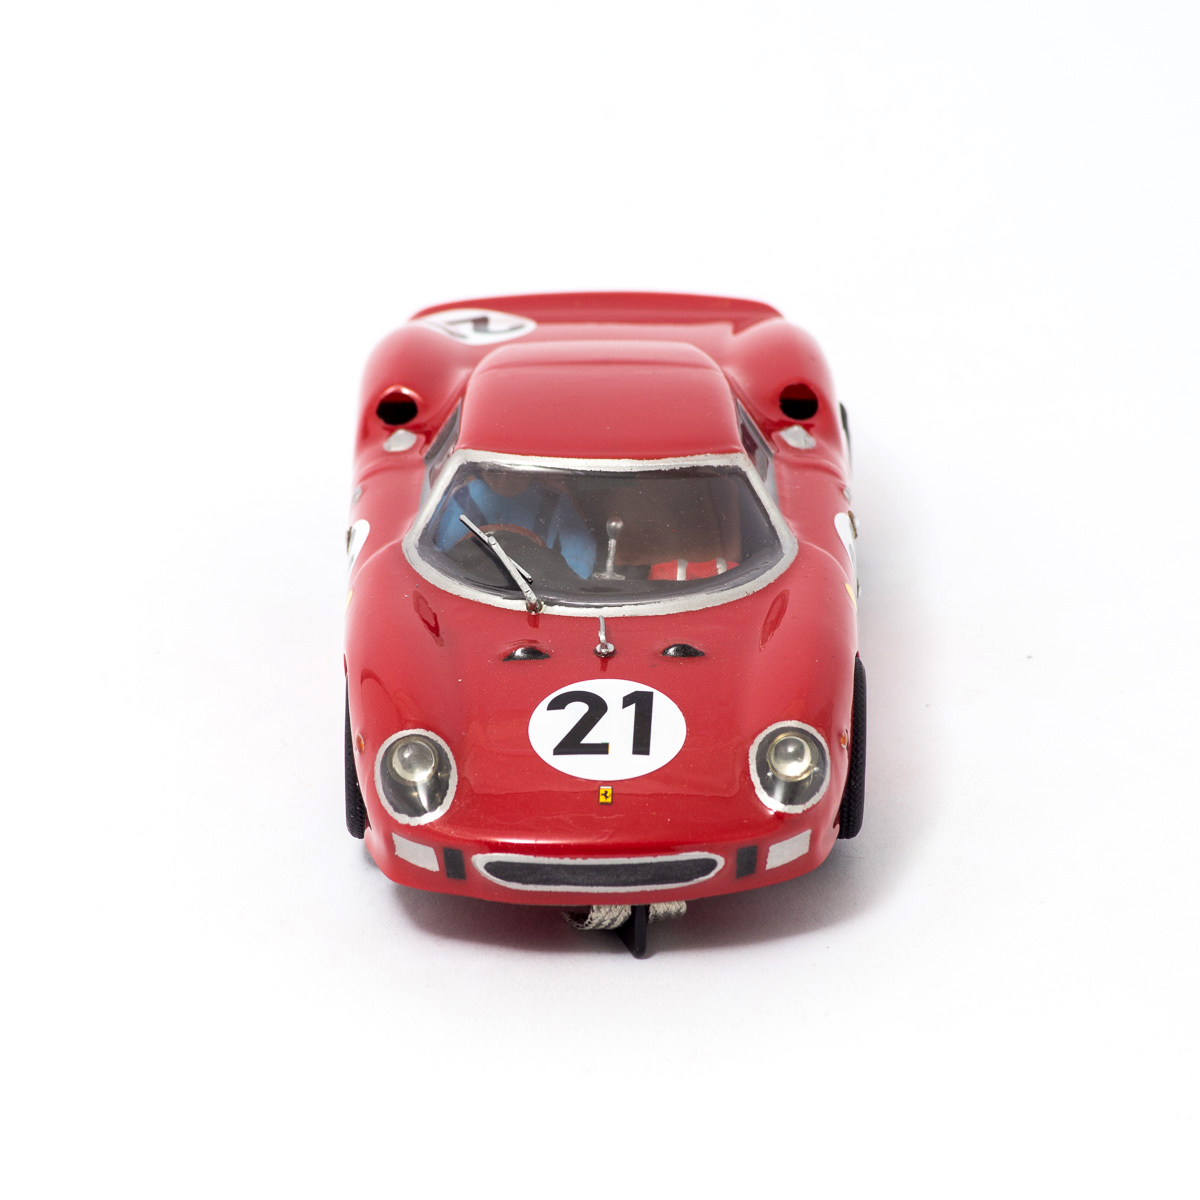 Slot Car Ferrari 250 LM #21 Nart 1965 Gregory/Rindt 1:24